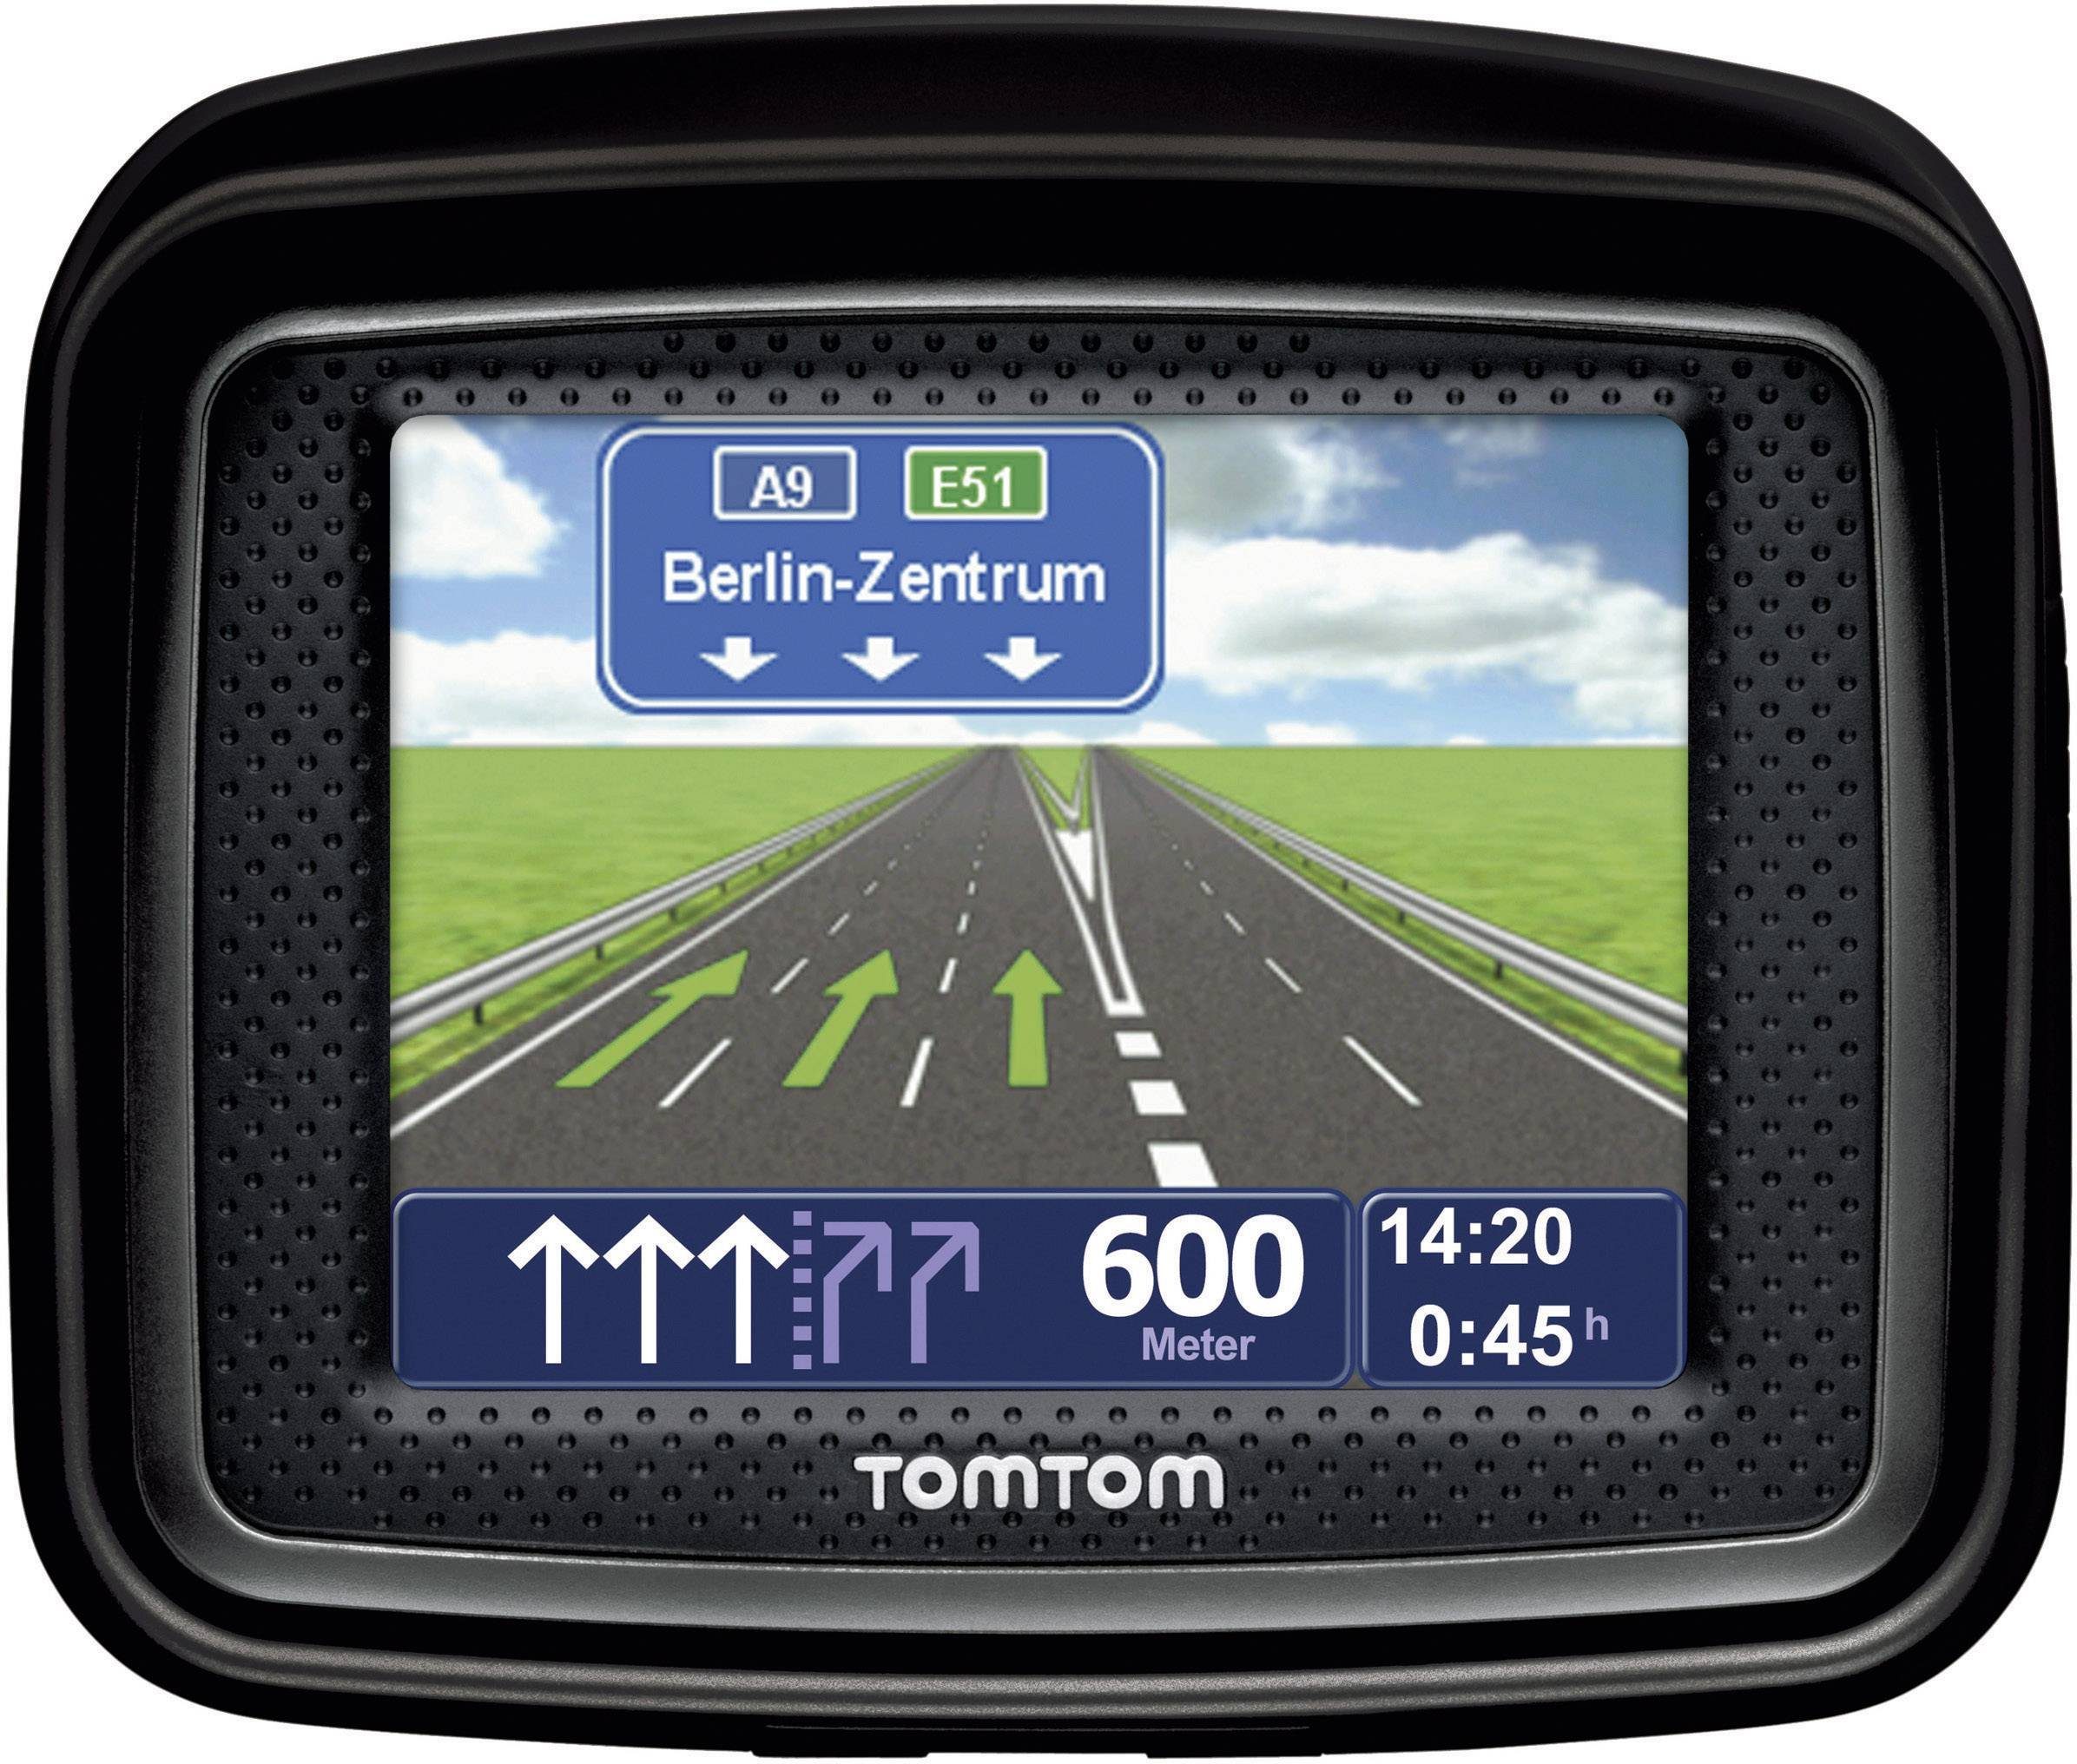 tomtom urban rider sat nav maps of europe from conrad electronic uk rh conrad electronic co uk TomTom Installation Software TomTom Installation Software